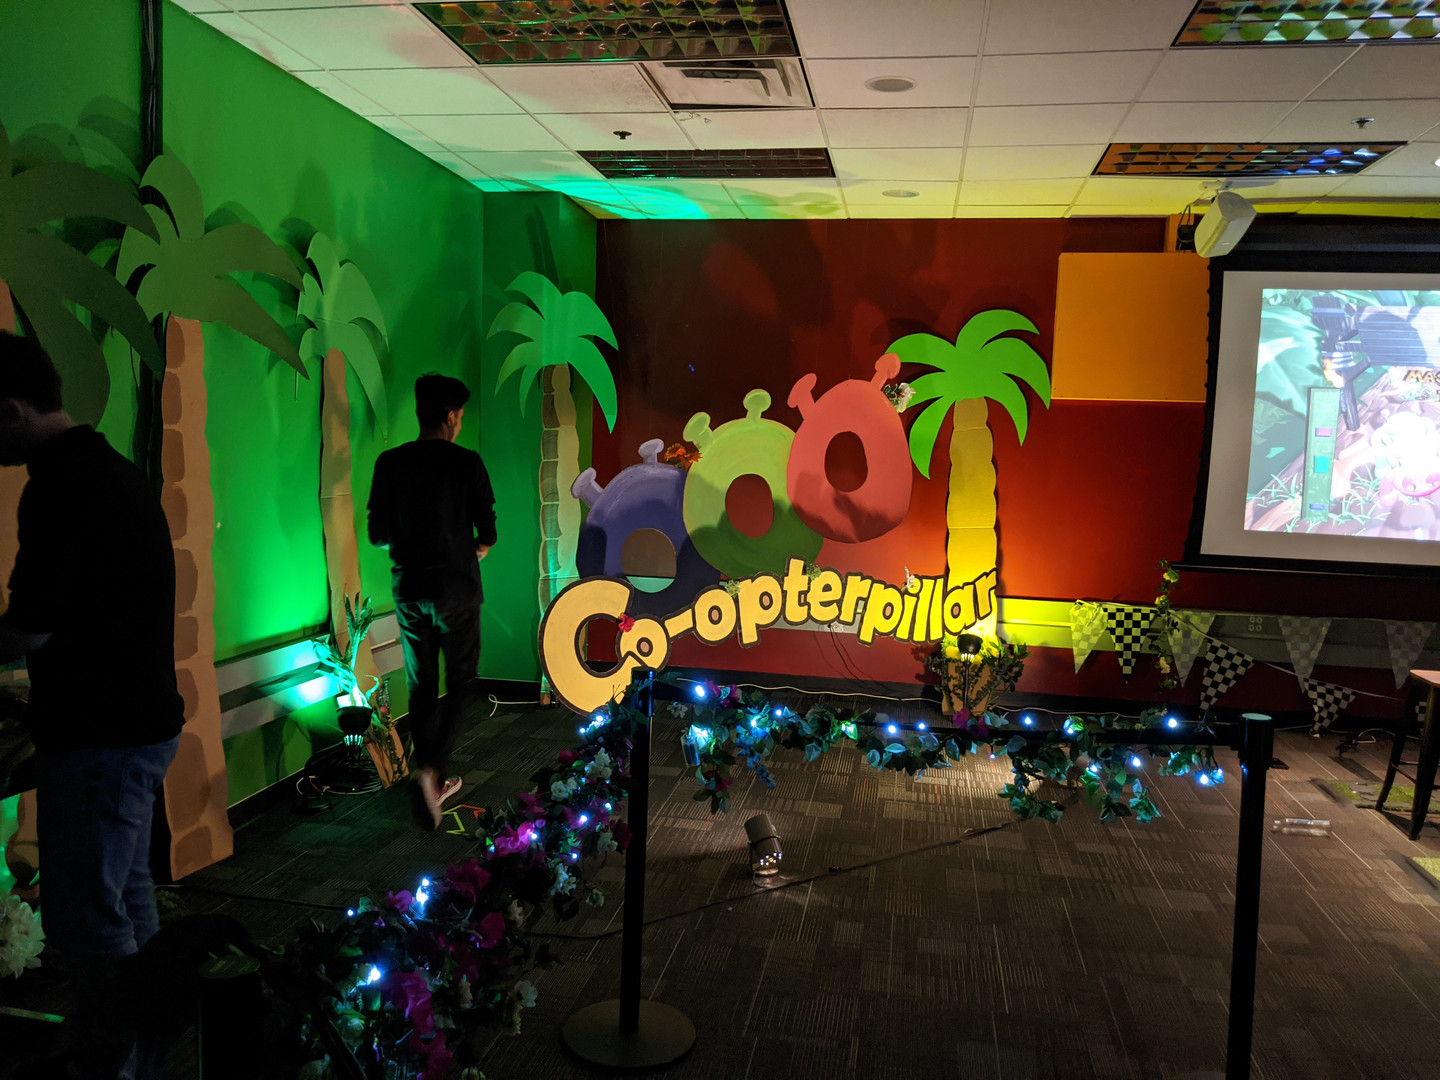 Co-opterpillar - Festival Room_1.jpg